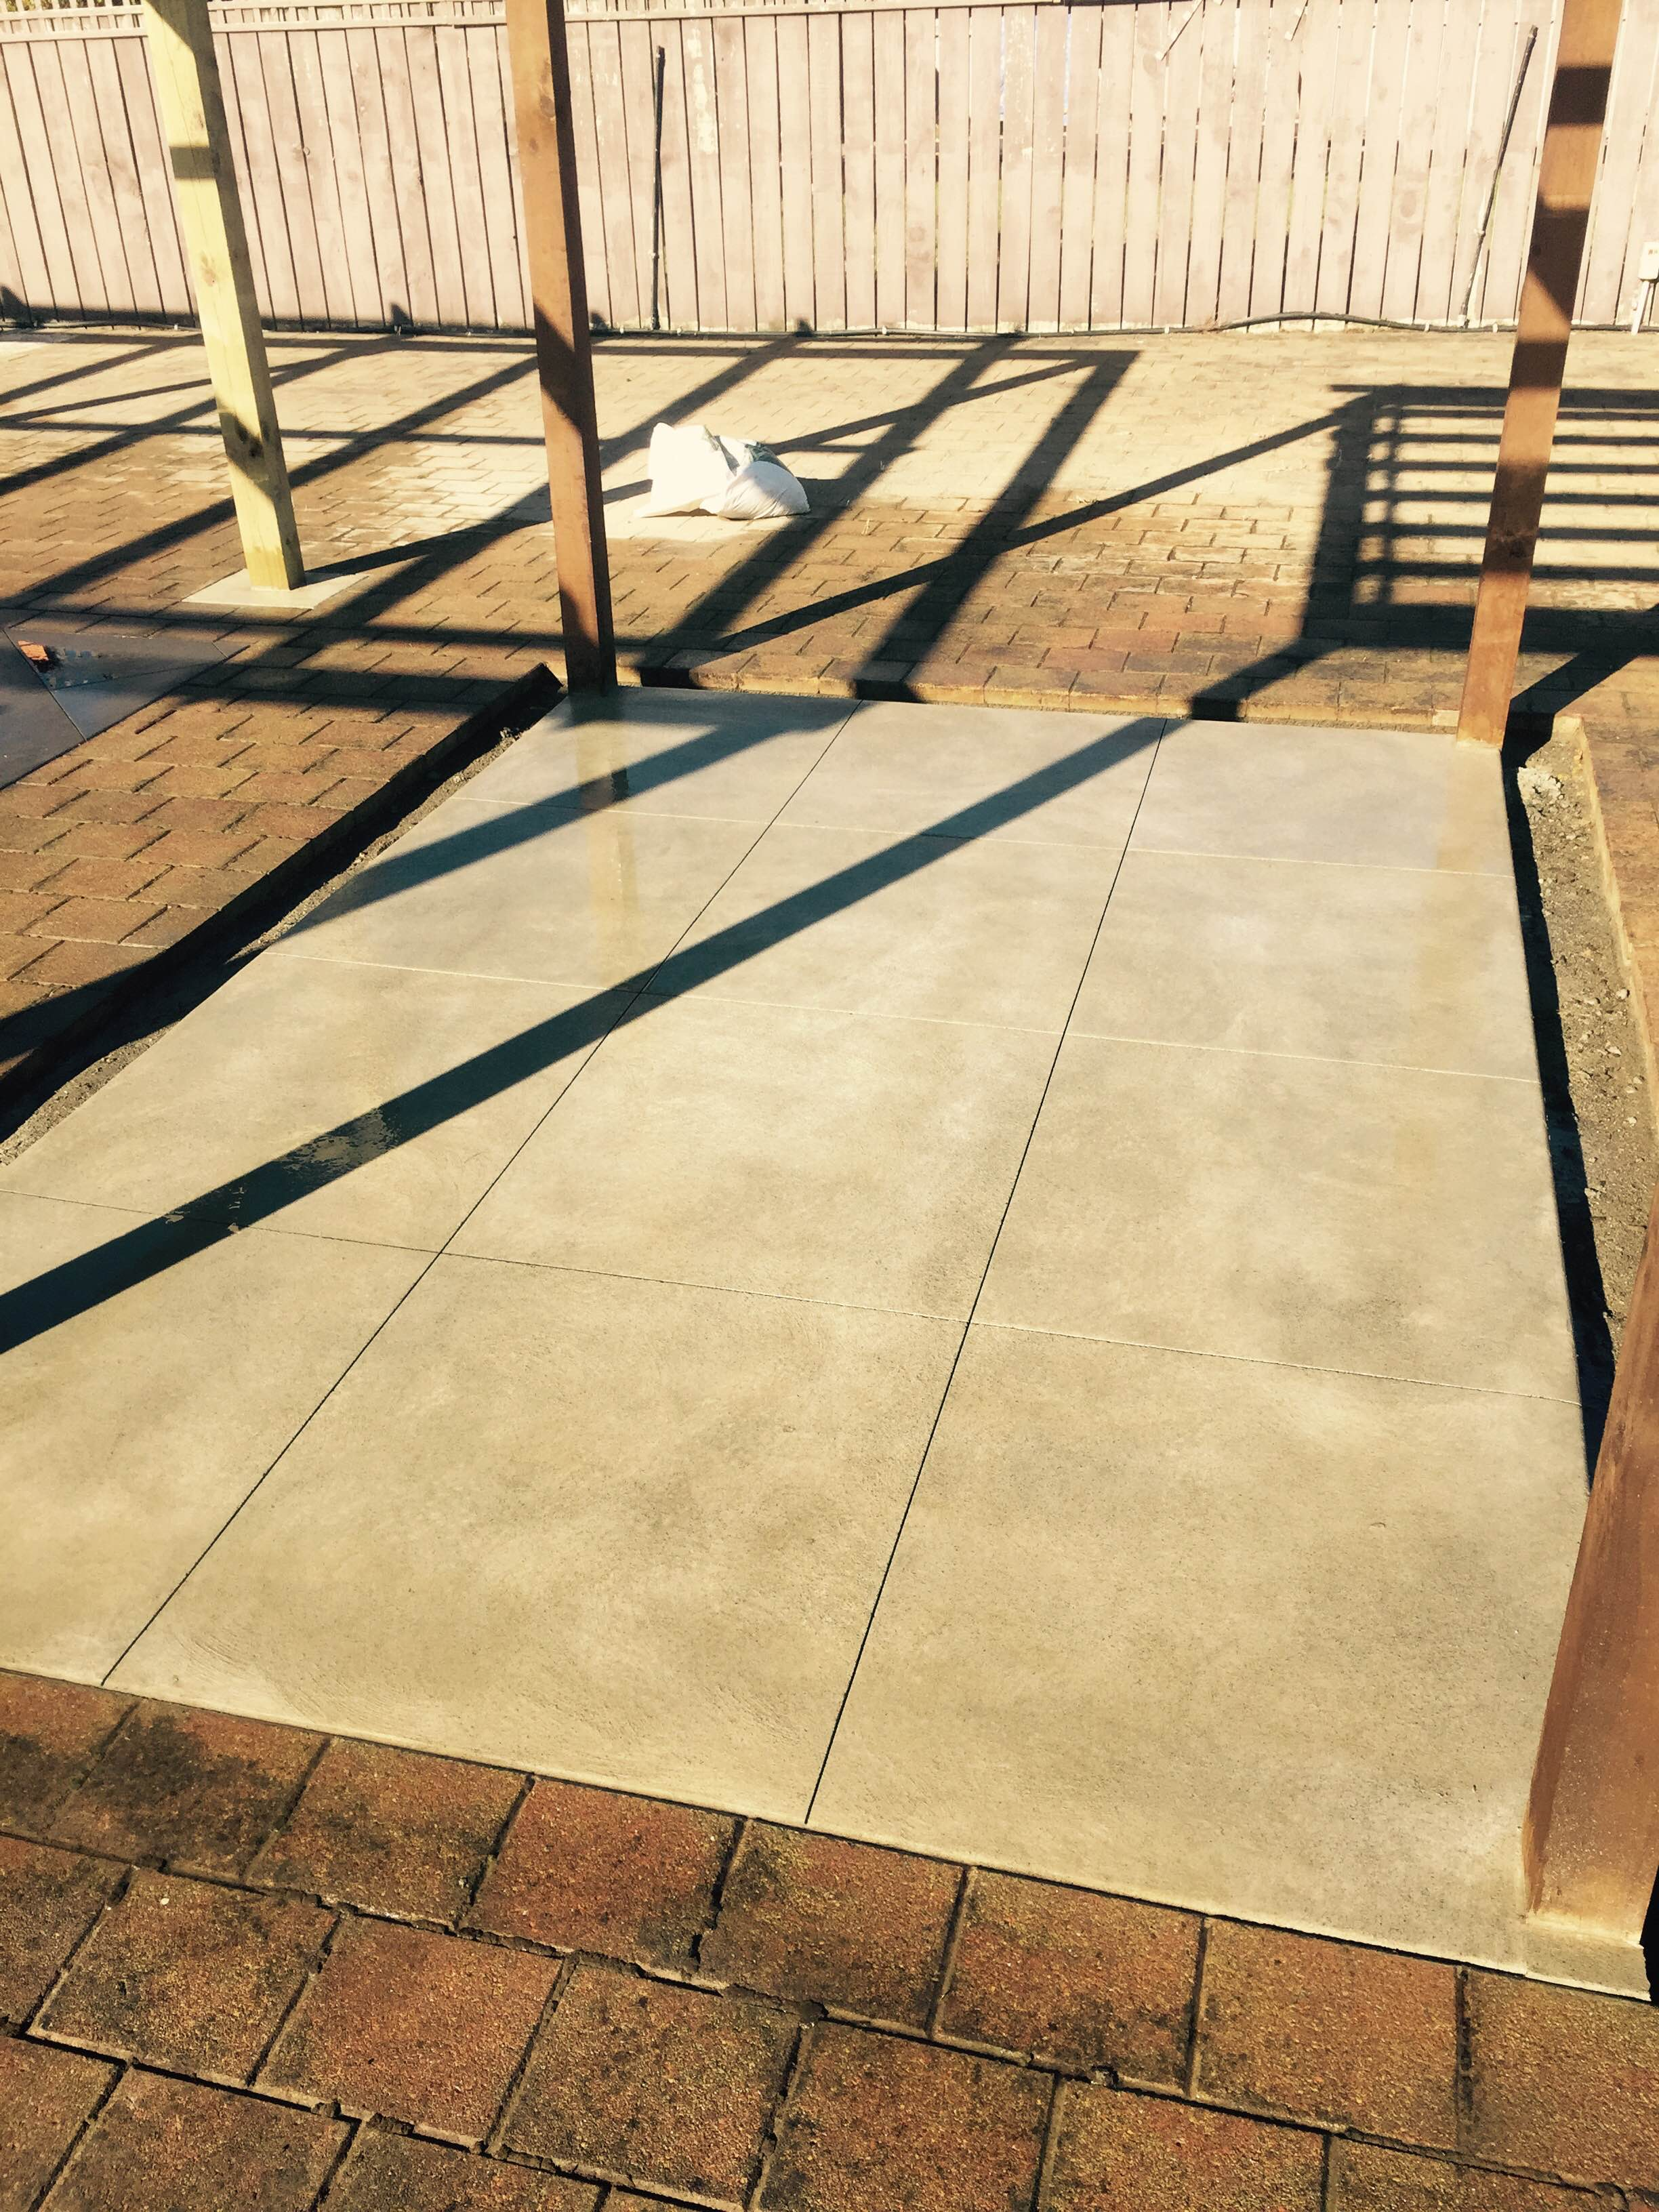 Sponge Finish Concrete Cut Into Squares - California Garden Centre